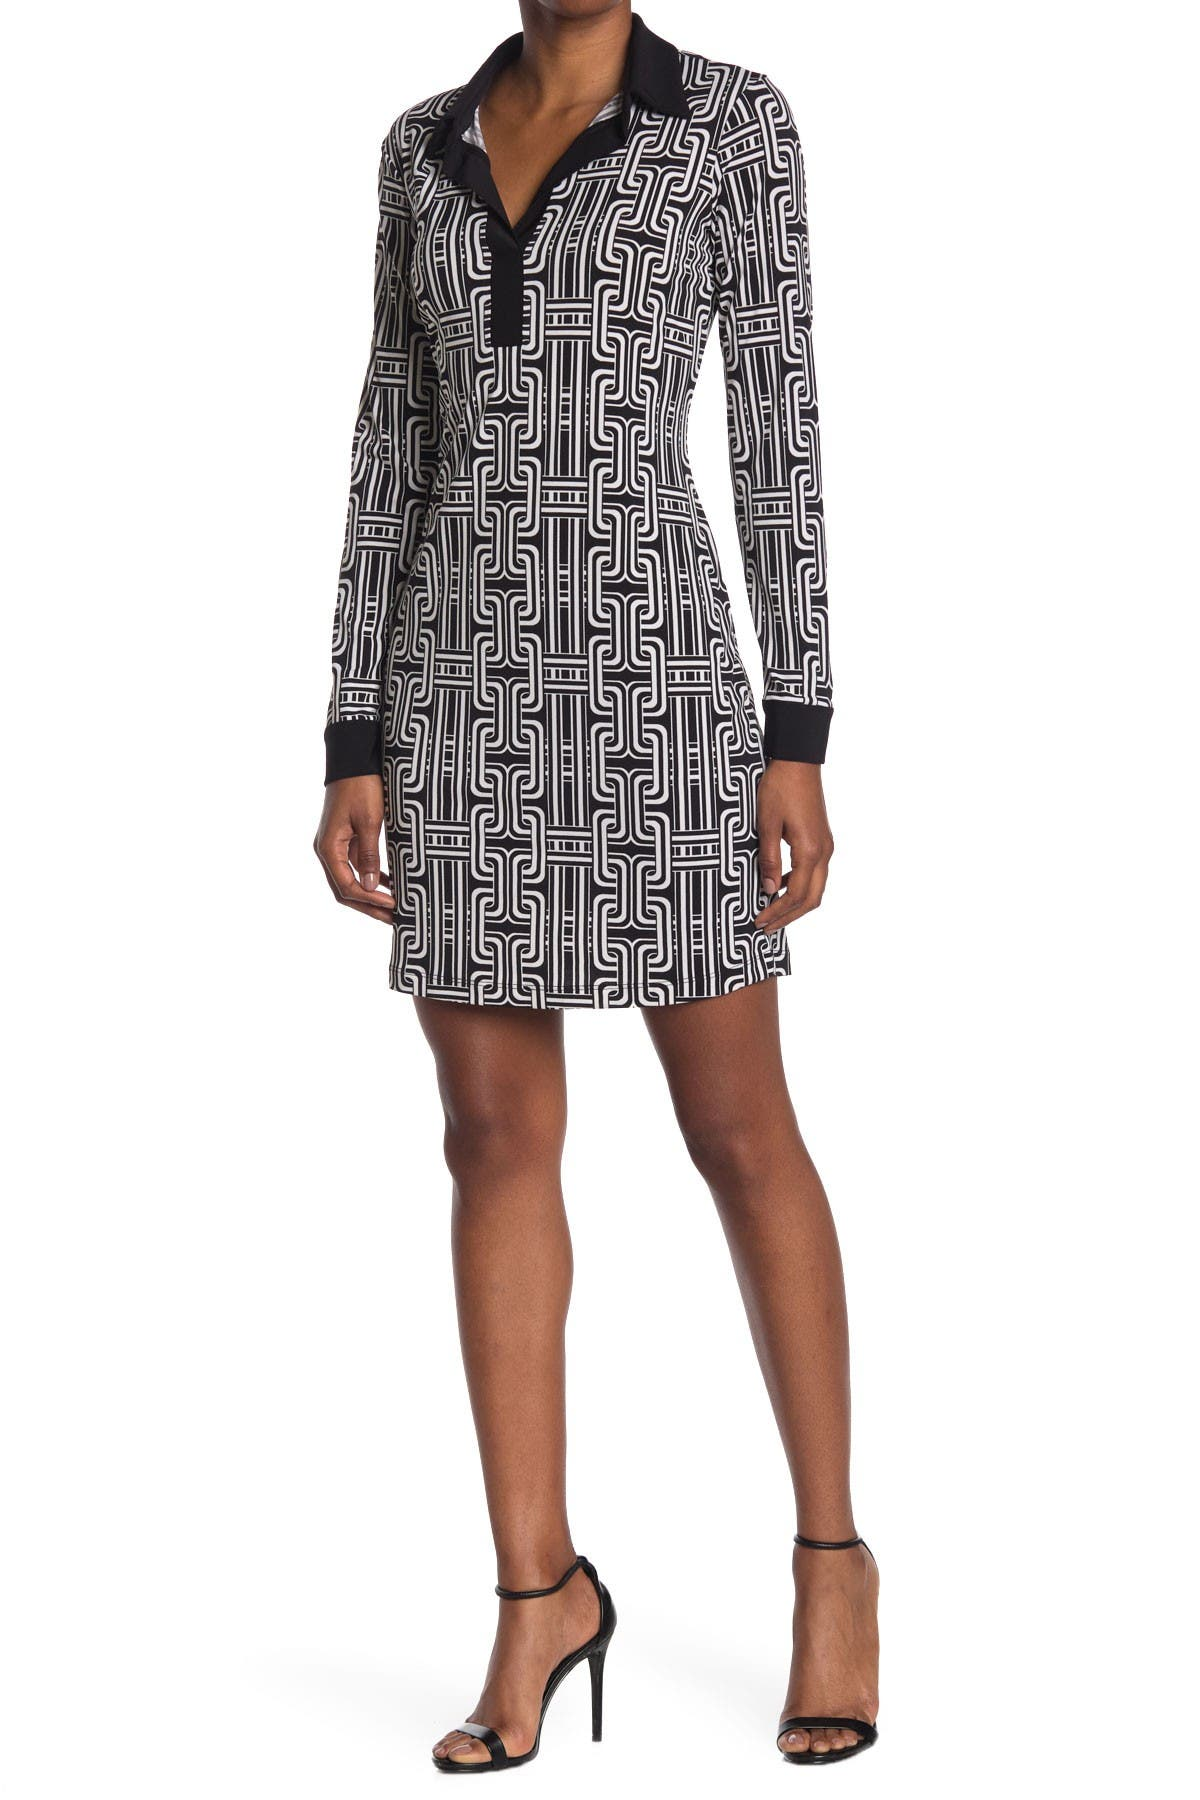 Image of TASH + SOPHIE Collared Shirt Dress